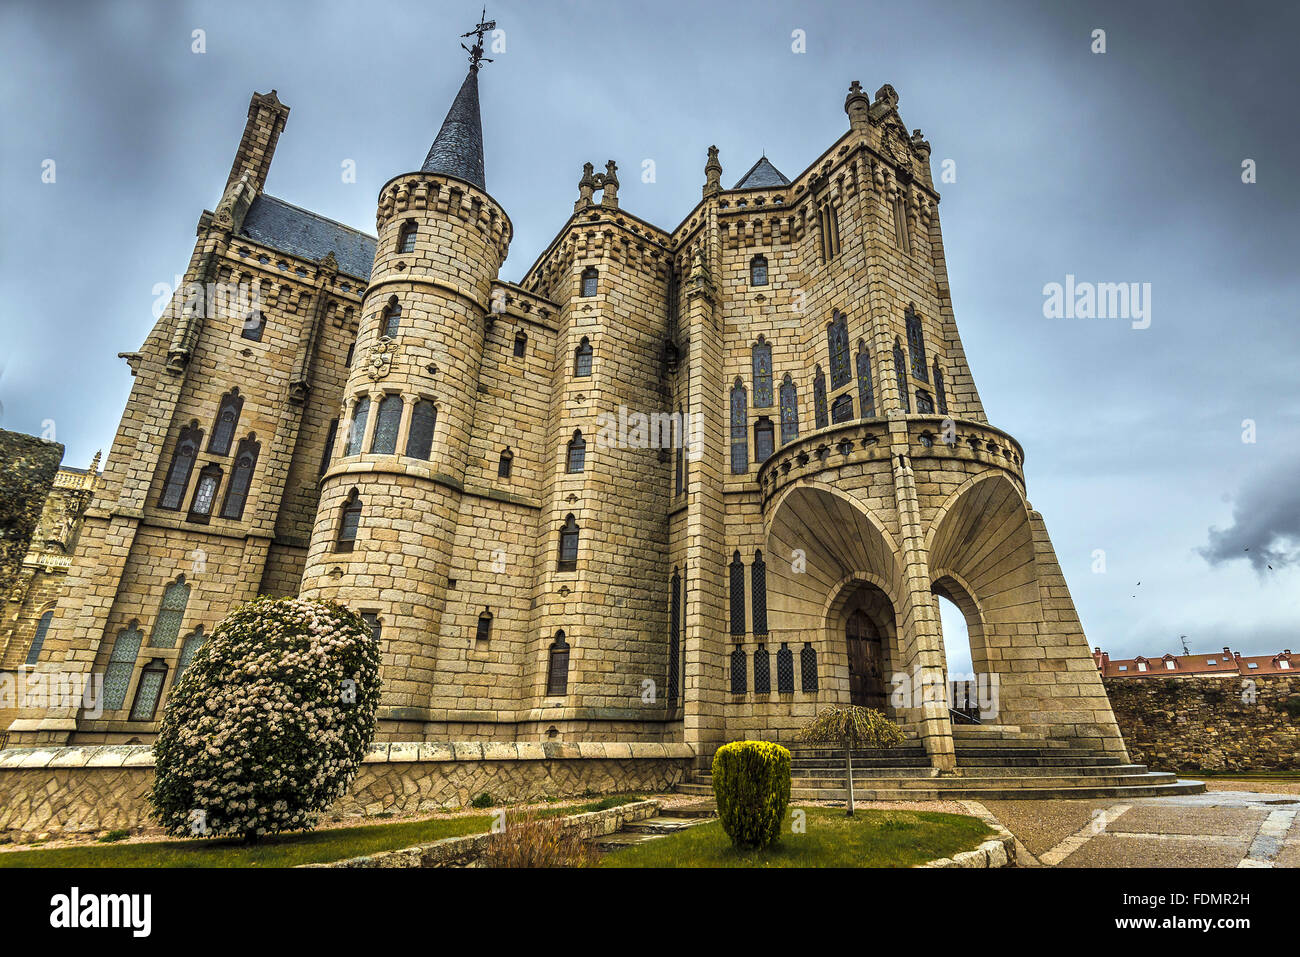 Episcopal Palace of Astorga - designed by Antoni Gaudi - construction 1889-1913 - Stock Image